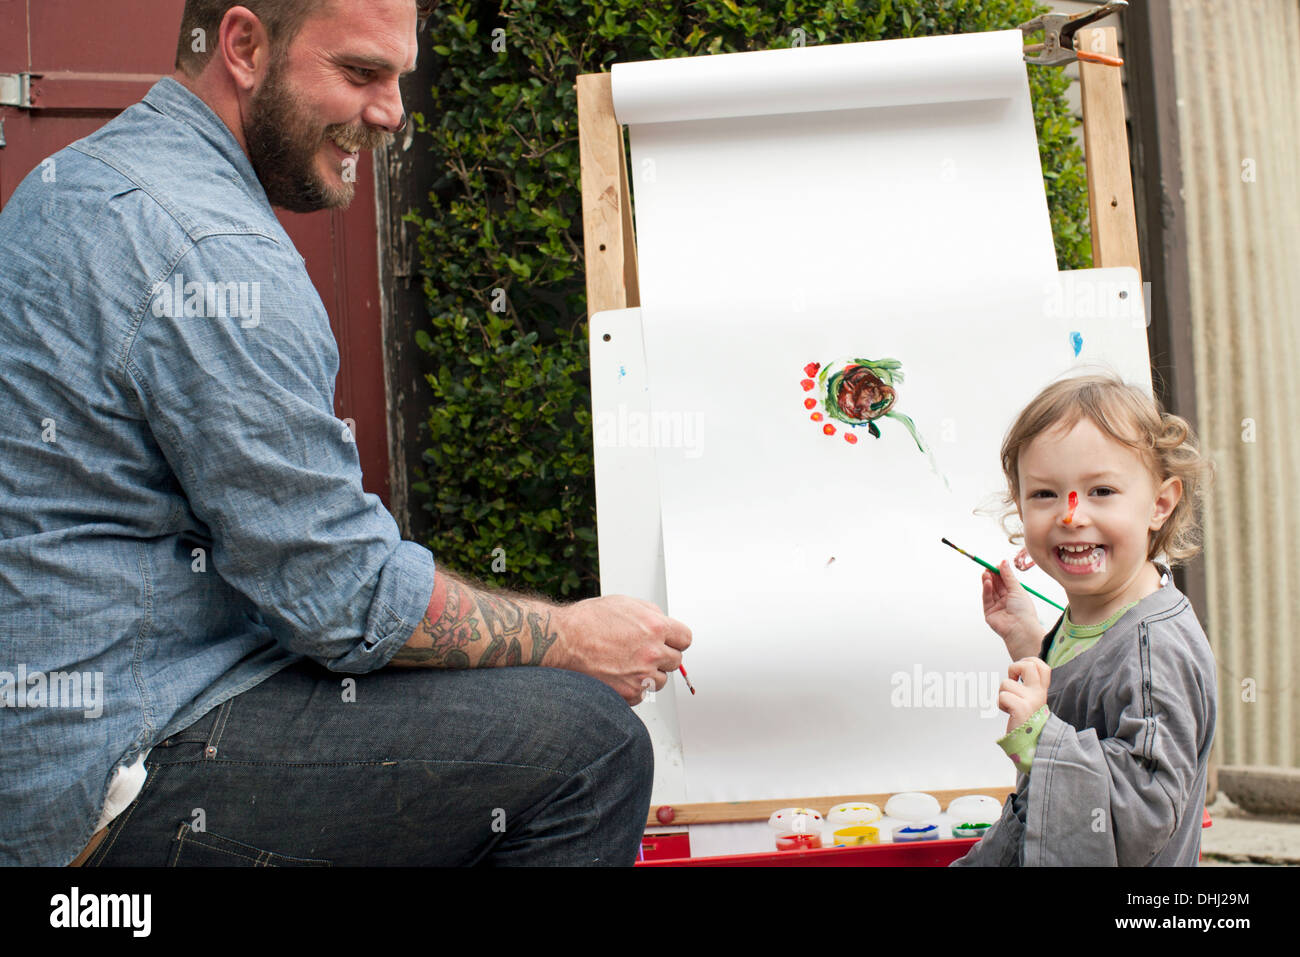 Father fooling around putting paint on daughter's face - Stock Image